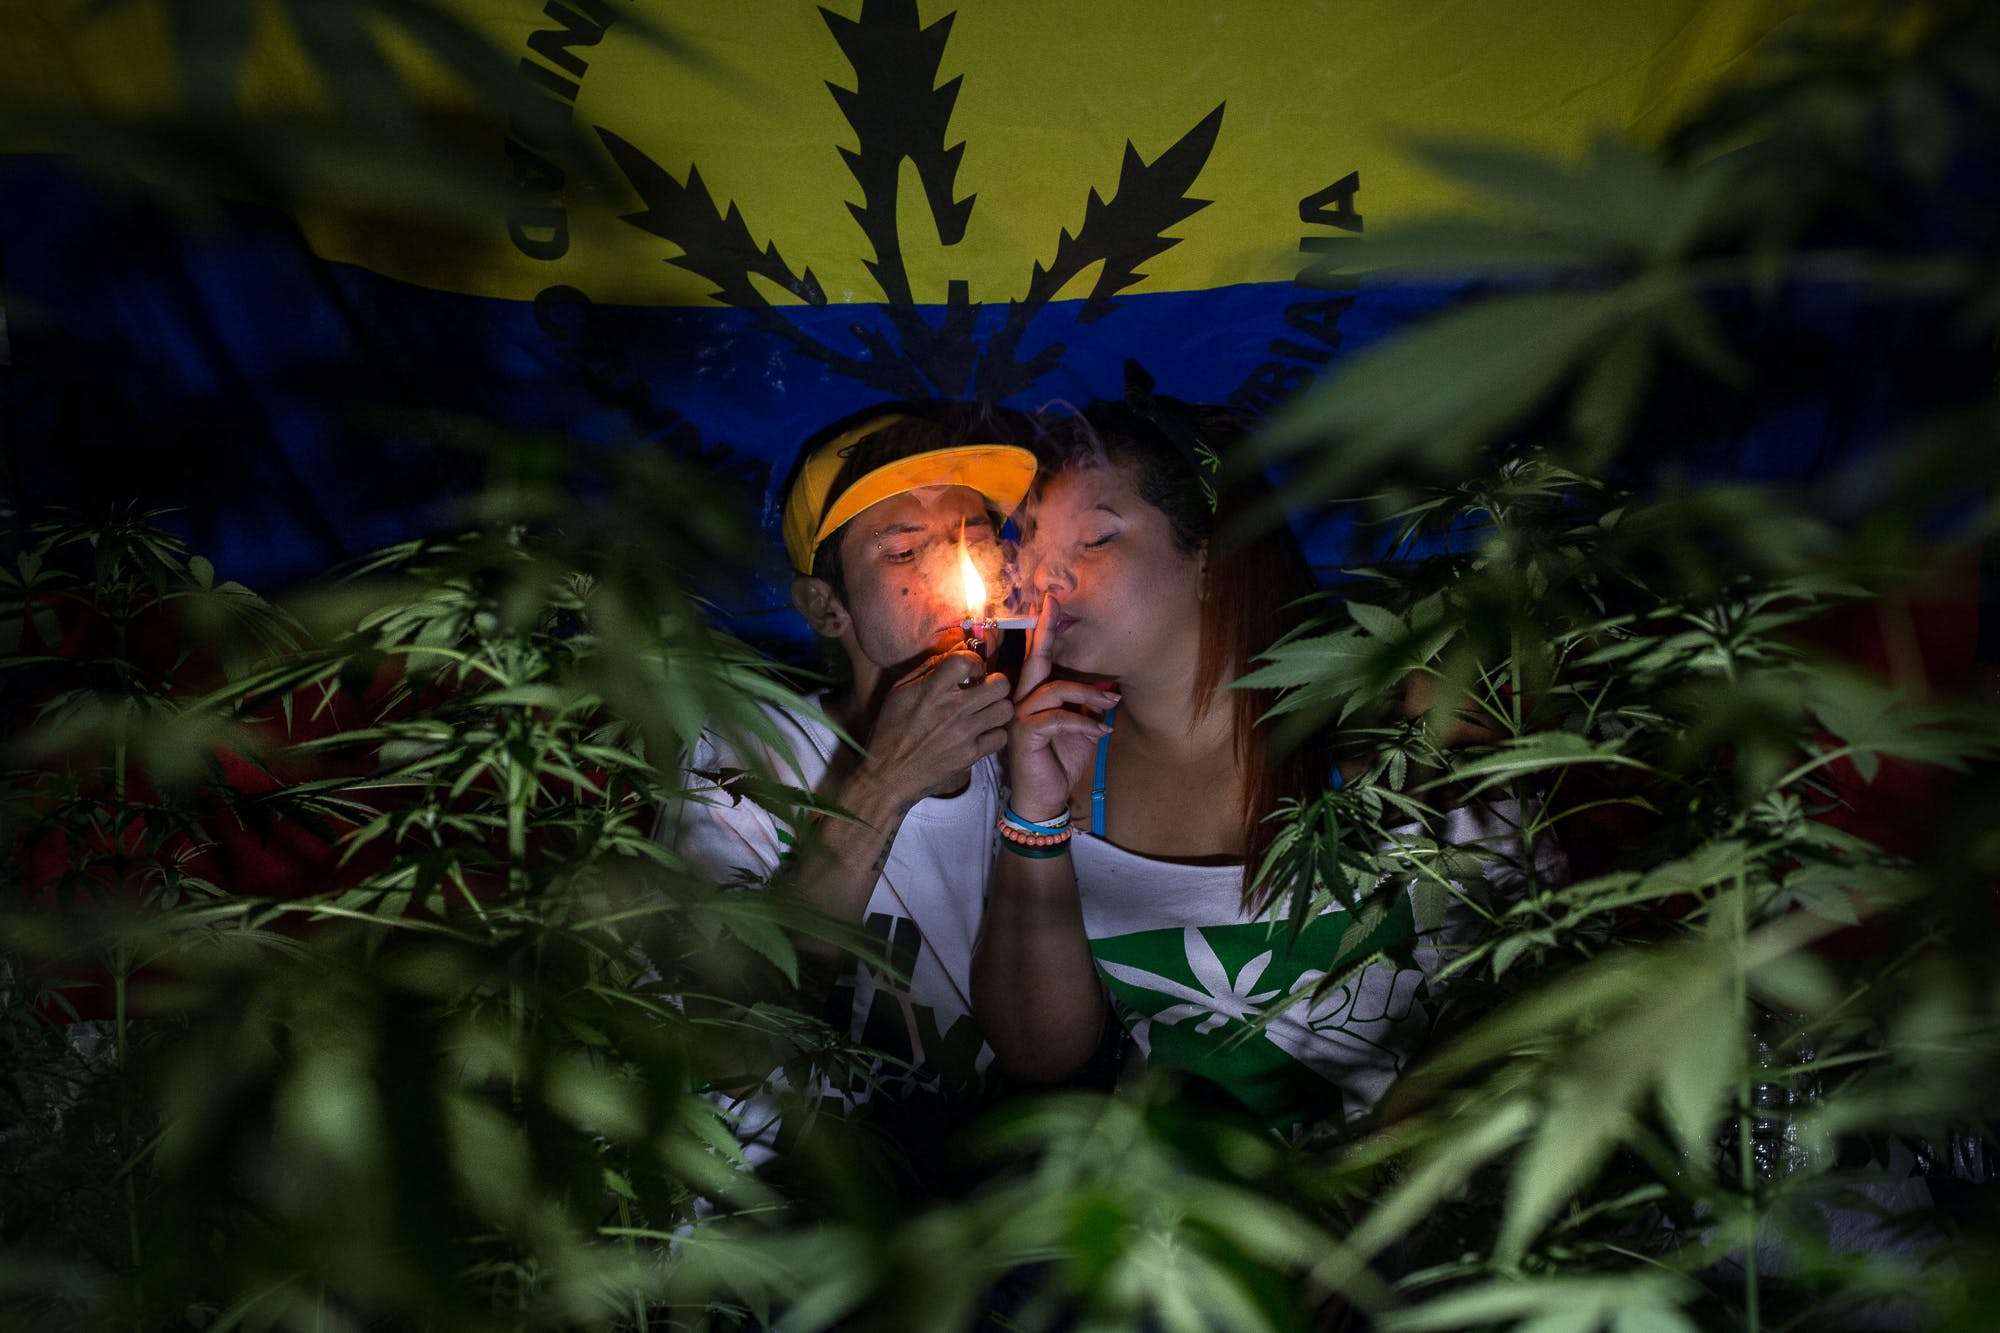 Marijuana Grows Medelli%CC%81n Colombia Photo Essay 9 Cannabis is Legal in Vermont, But Gifting it Isnt